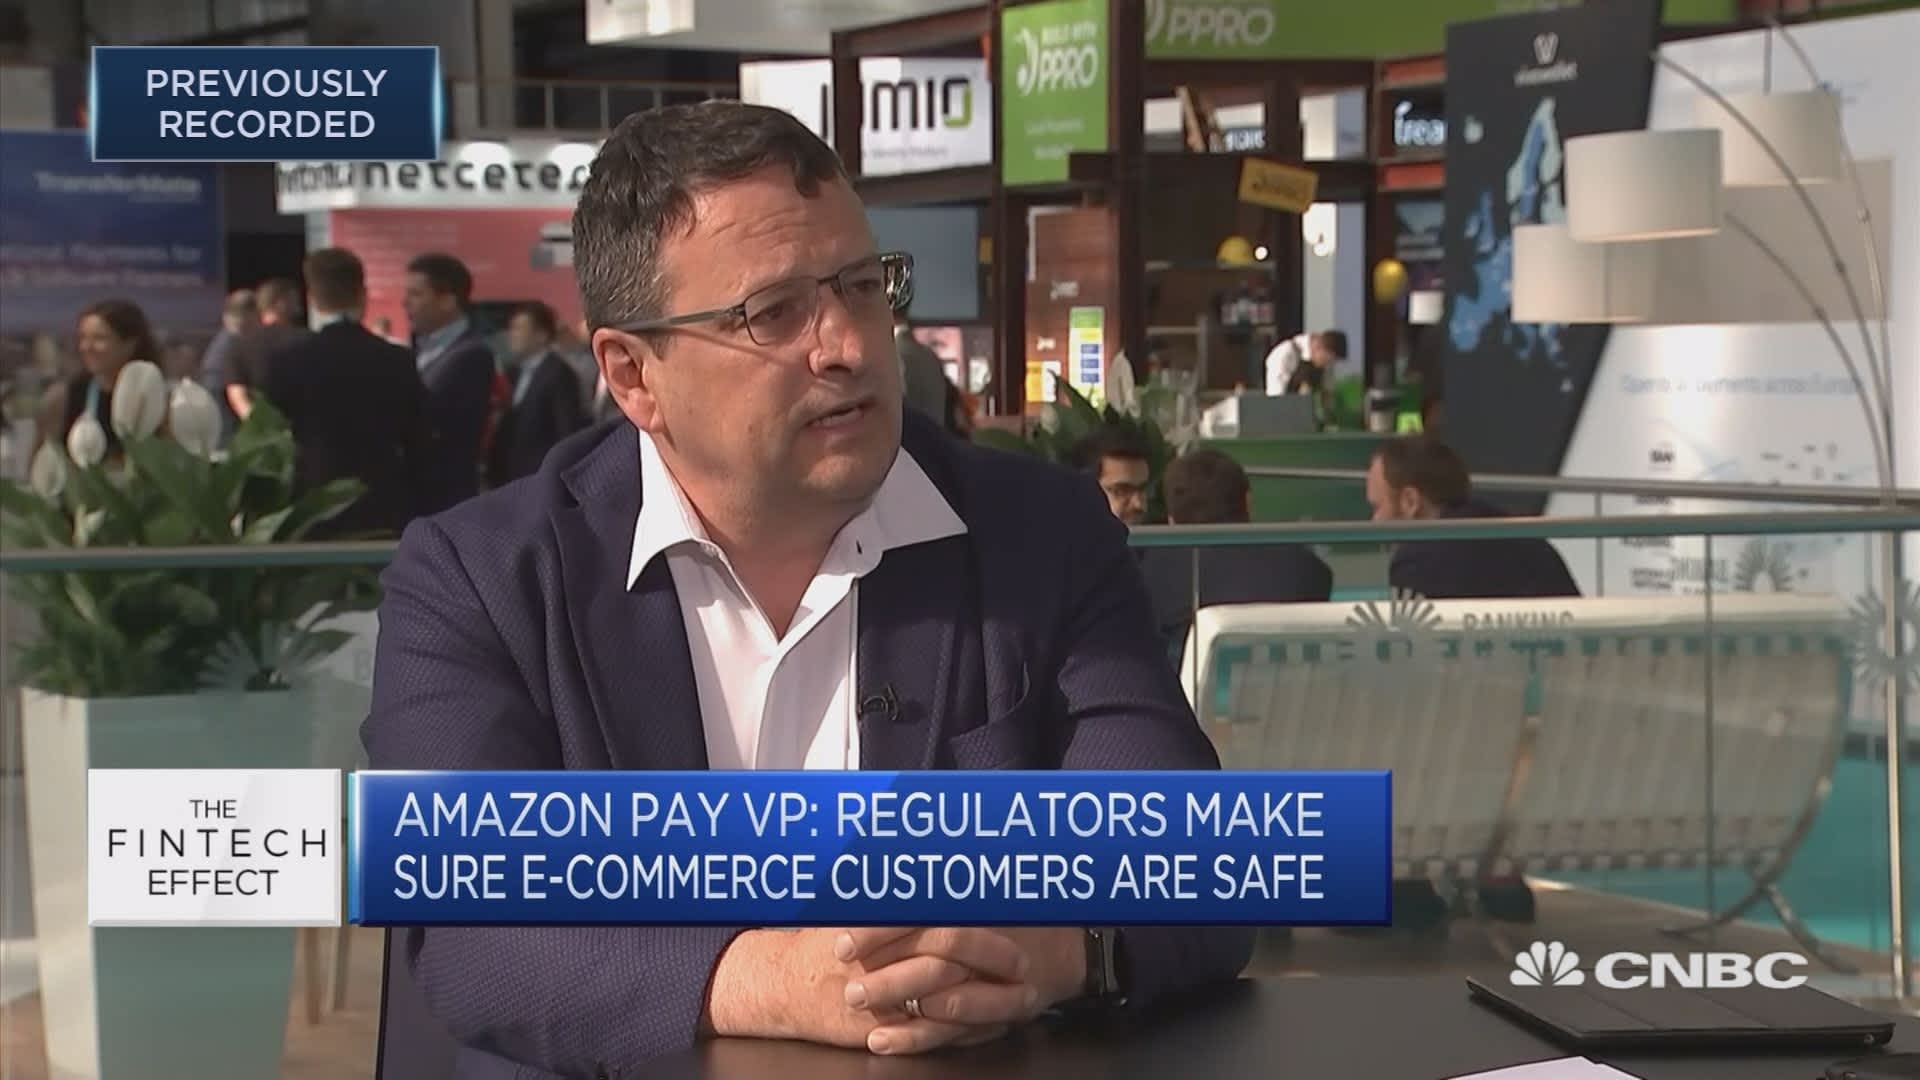 'A new era in commerce': Amazon Pay VP says voice payments potential is 'phenomenal'